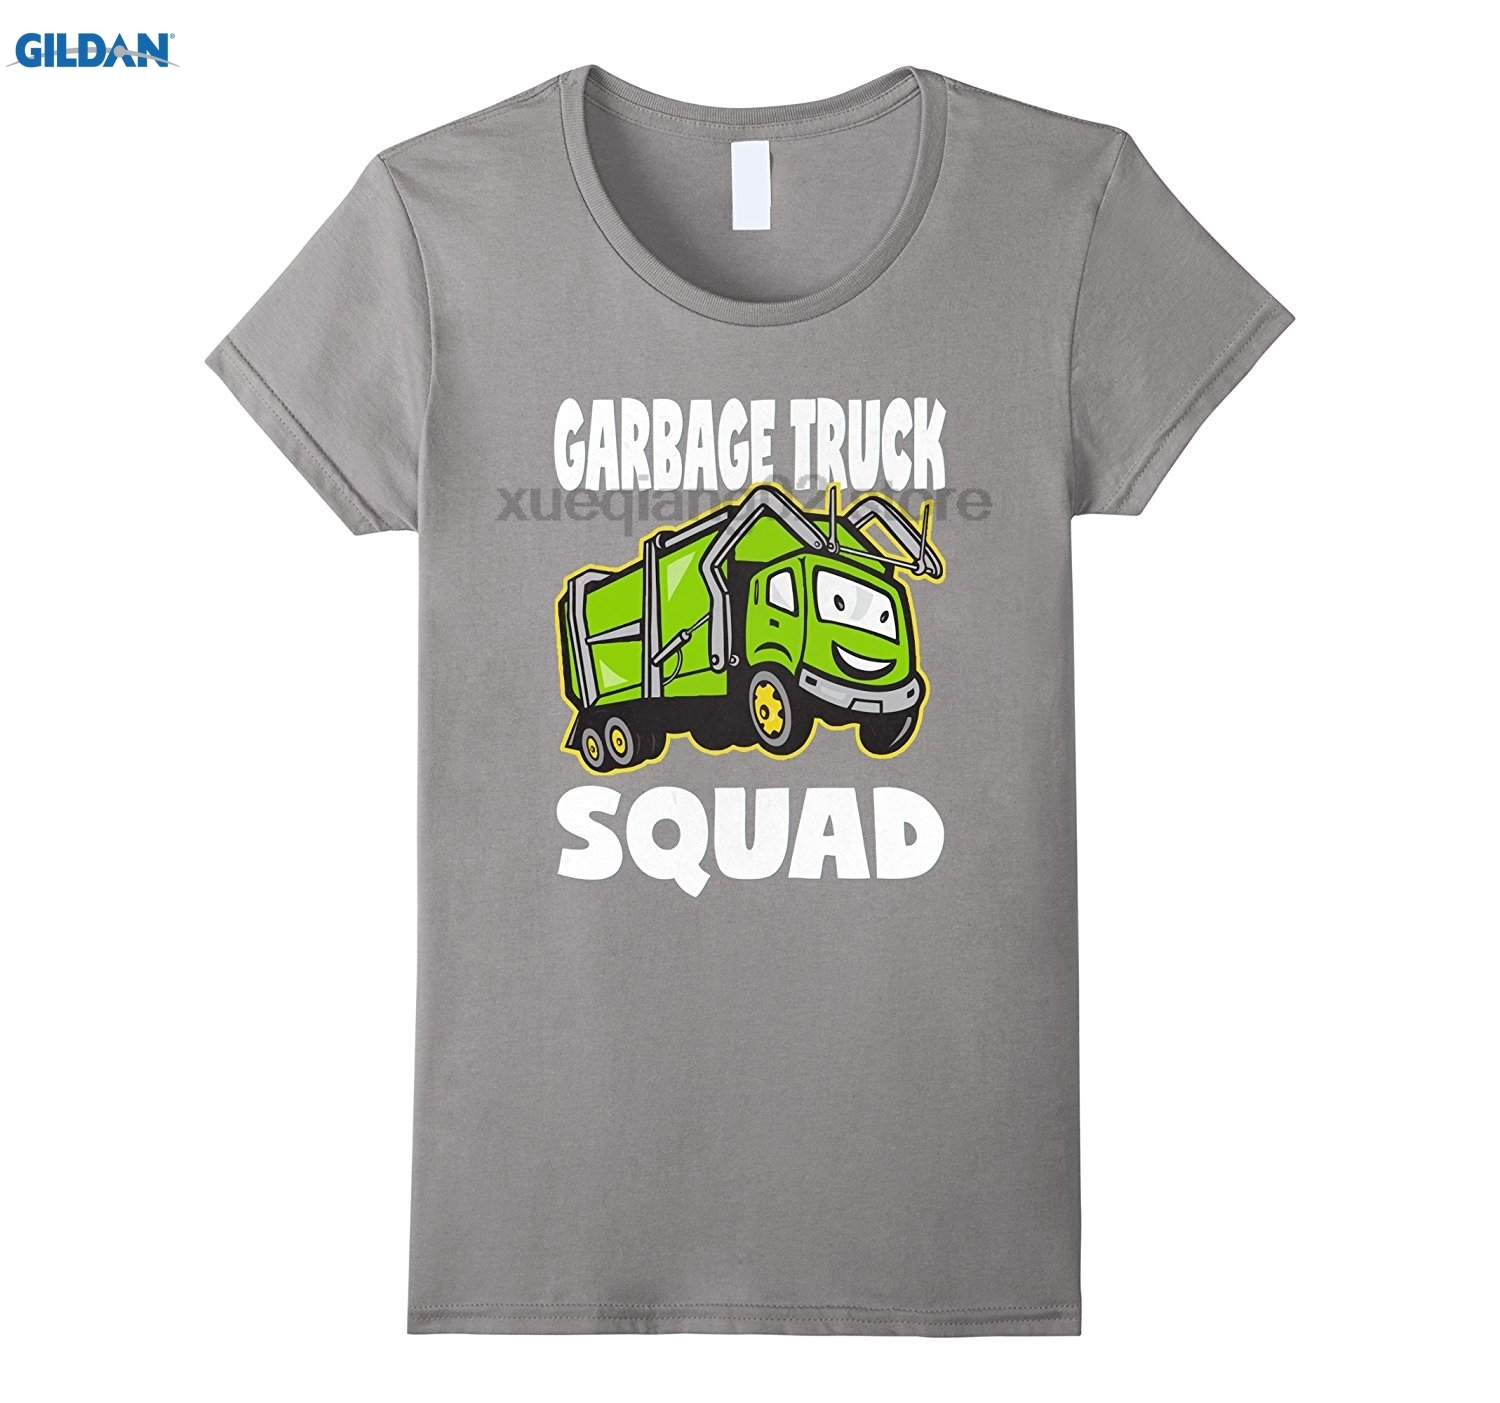 GILDAN Garbage Truck Squad Vintage Monster Trucks T-Shirt On Sale ...